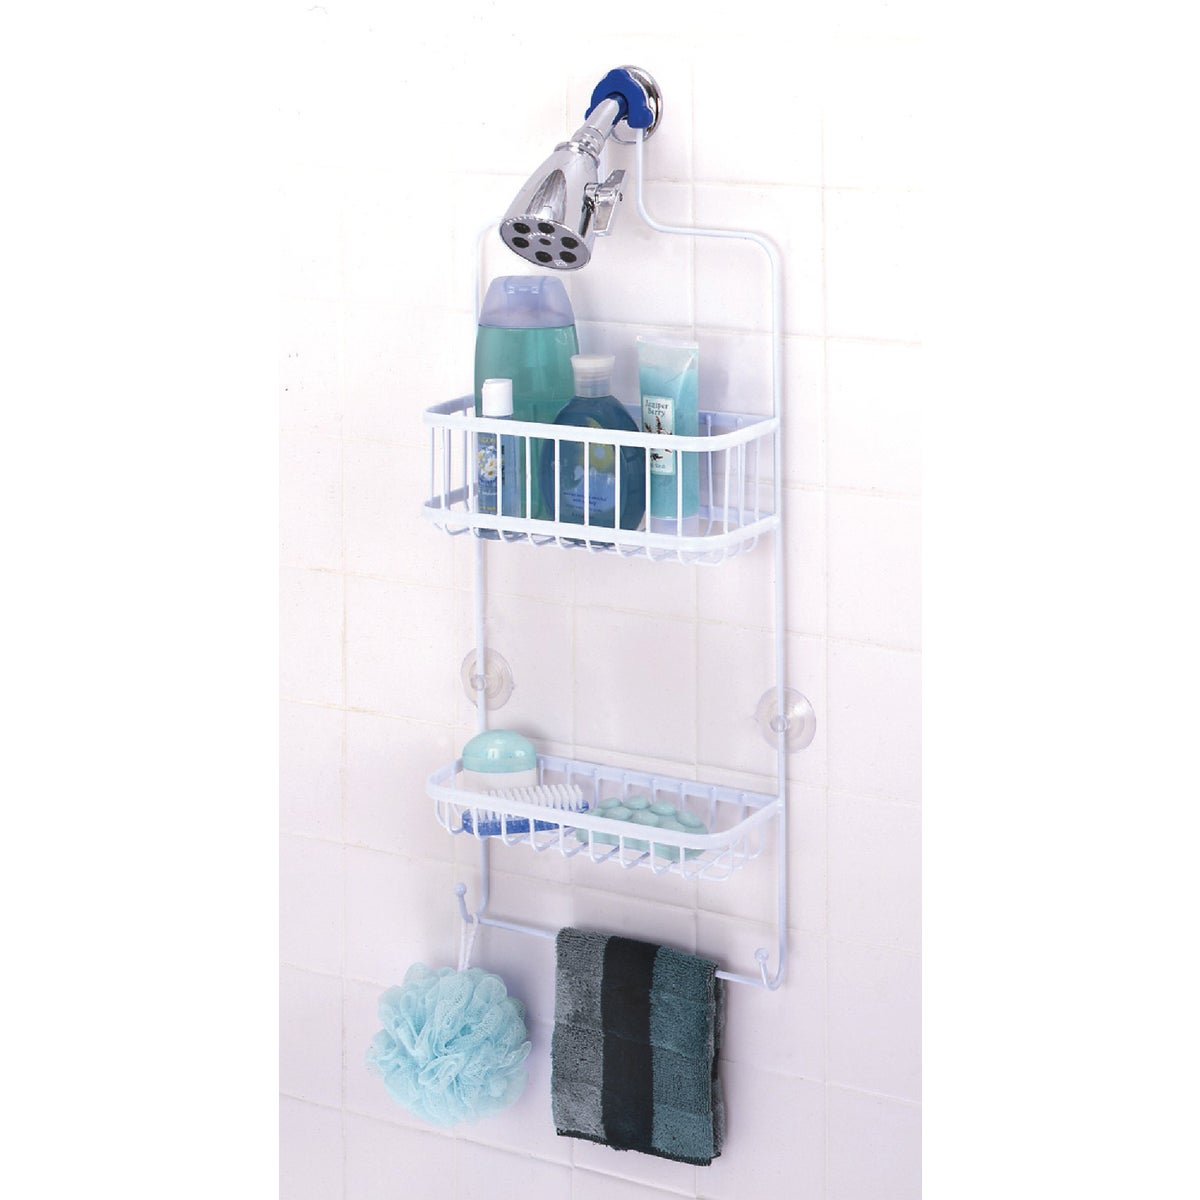 WHITE SHOWER HEAD CADDY - 7617WW by Zenith Prod Corp